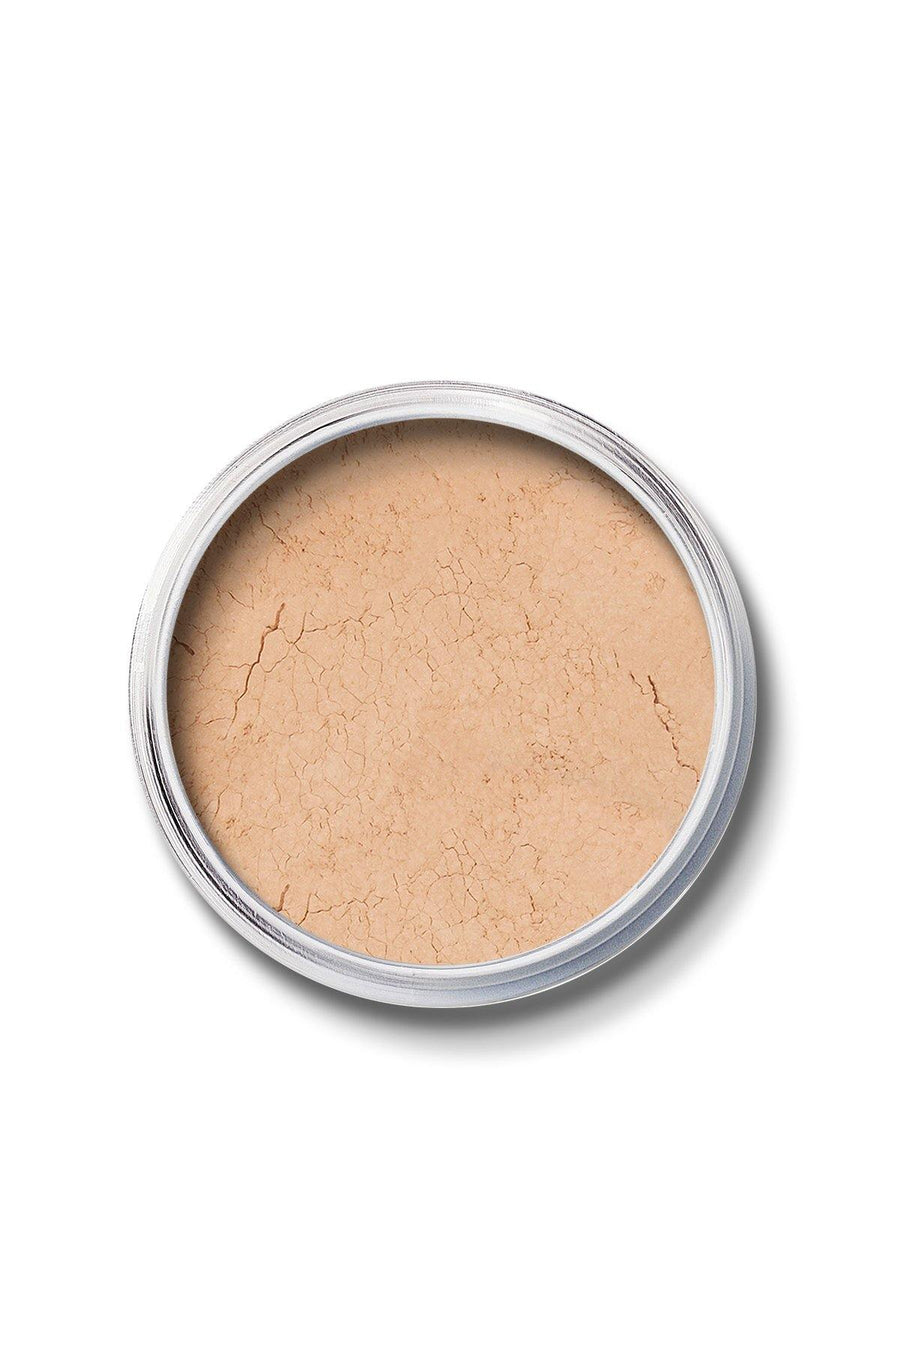 Mineral SPF 15 Foundation #4 - Natural Beige (Best Seller) - Blend Mineral Cosmetics